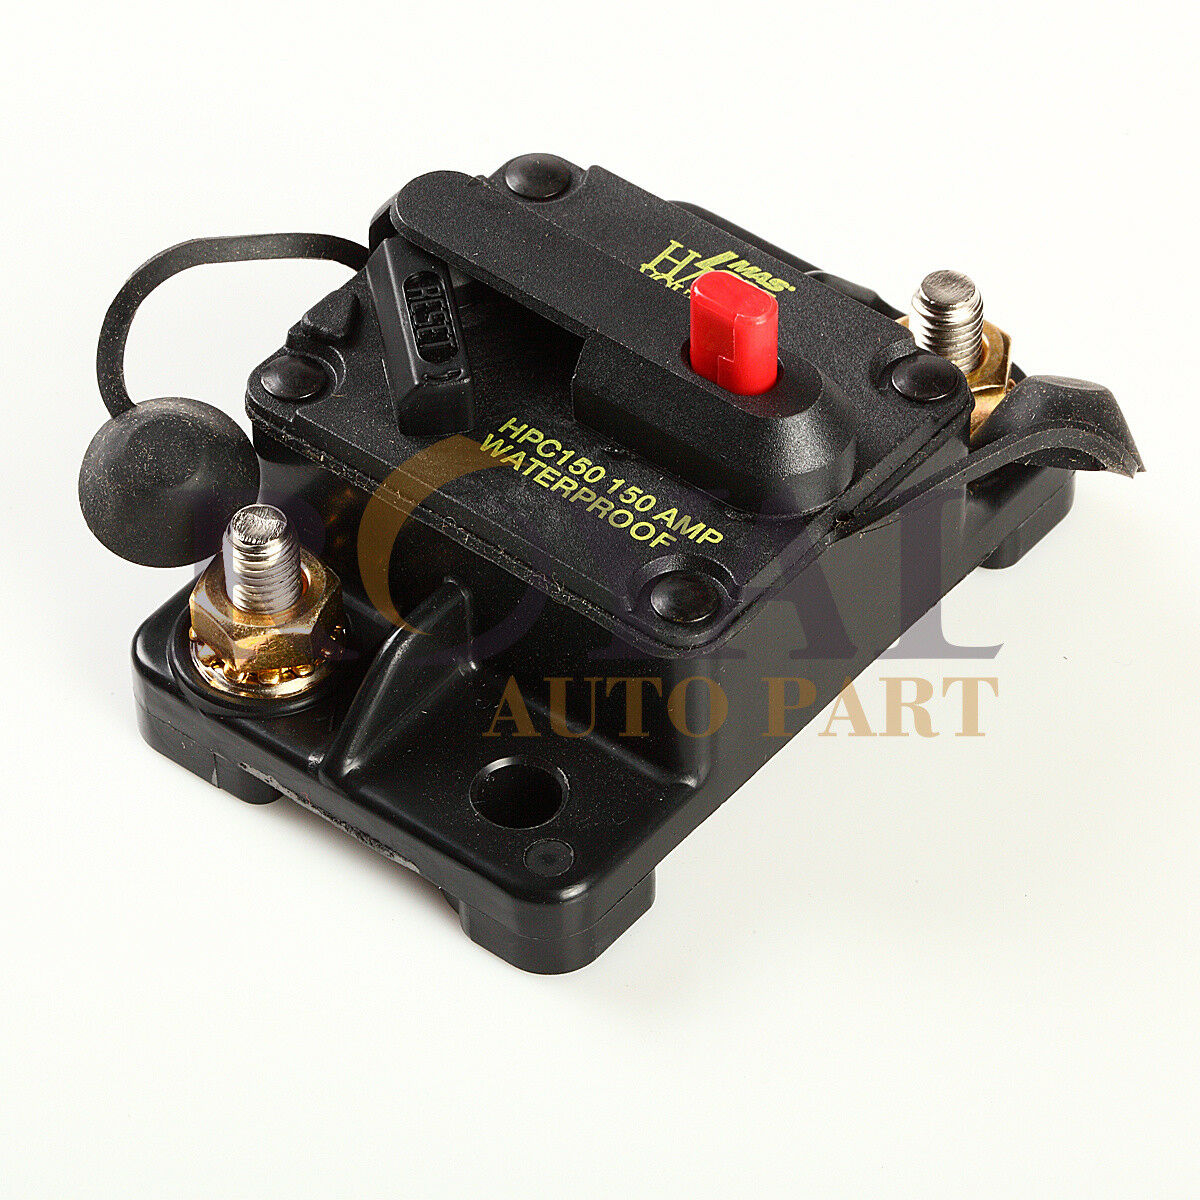 150 Amp Manual Reset Circuit Breaker 12v Car Auto Boat Audio Fuse Home Residential Zinsco Type R38 1 Of 3only 4 Available